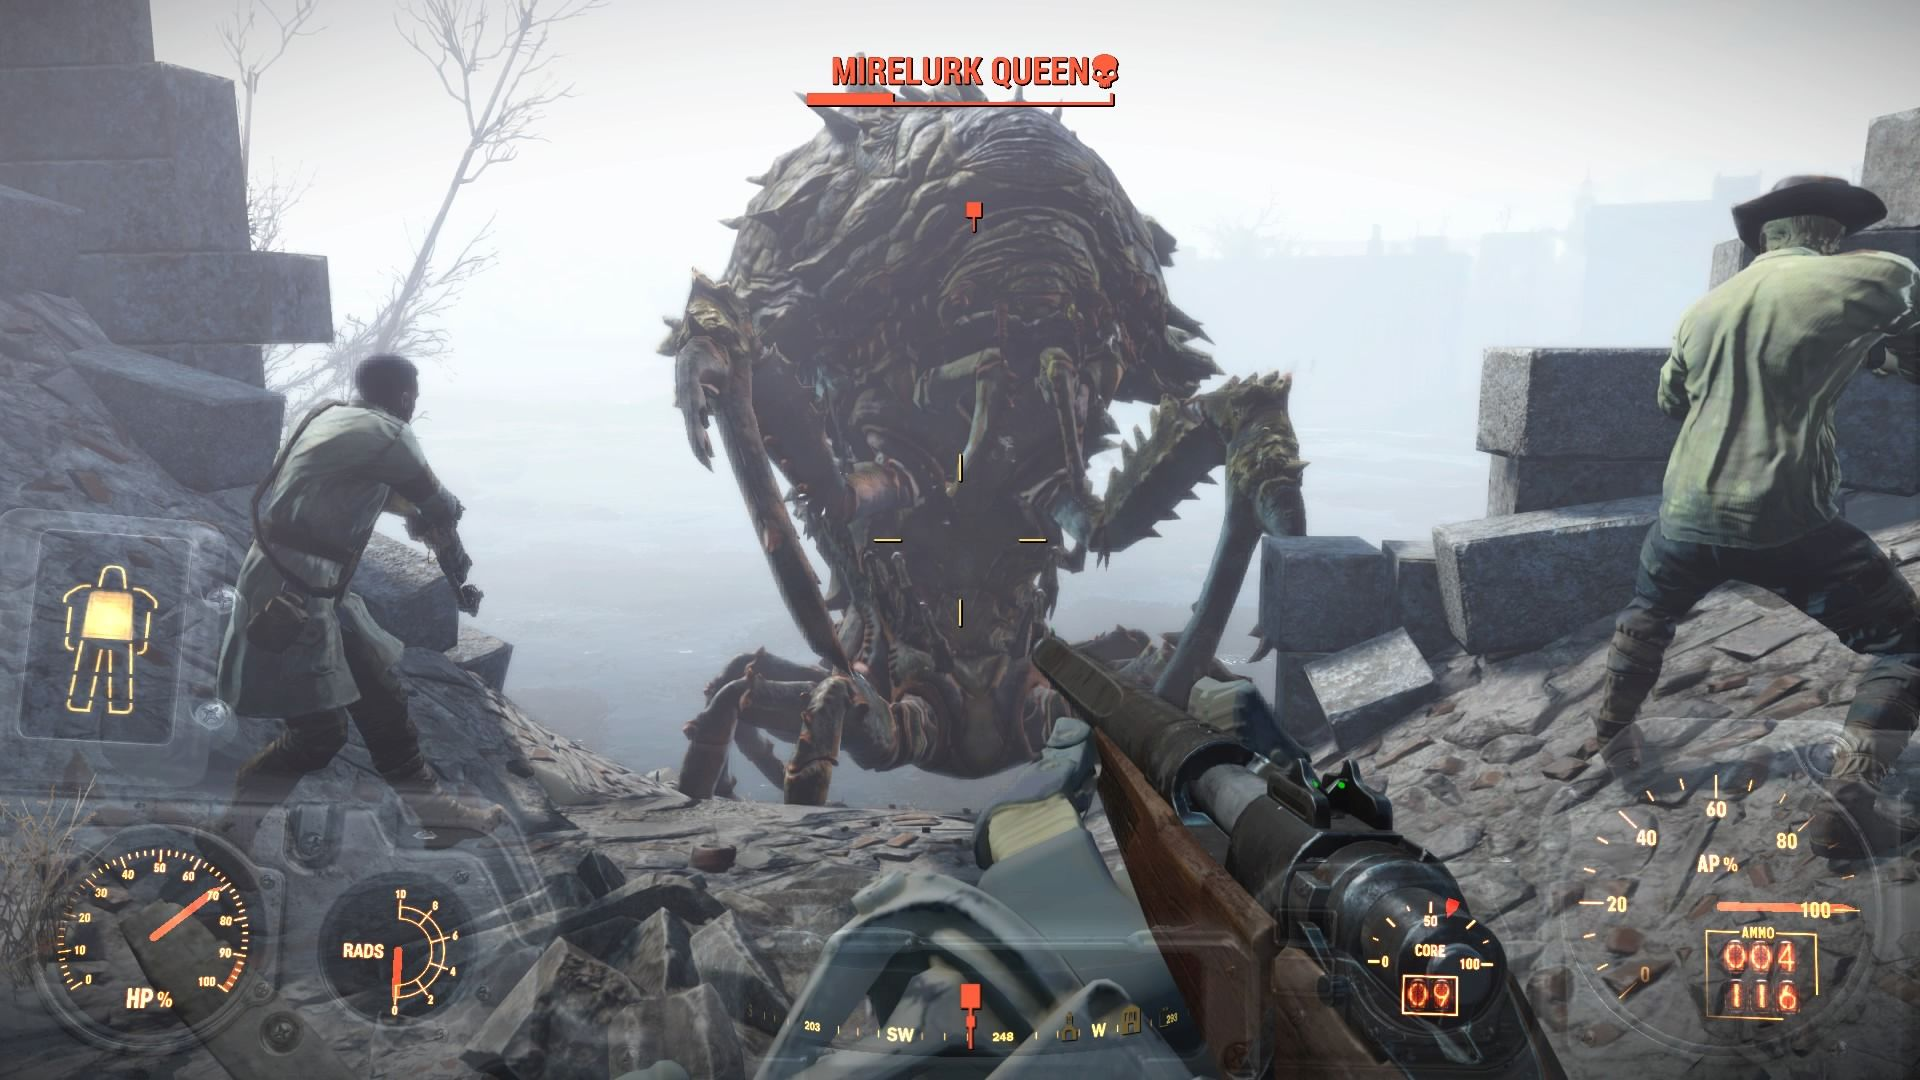 pc game chair bistro table and chairs page 14 of 15 for scariest fallout 4 enemies   gamers decide